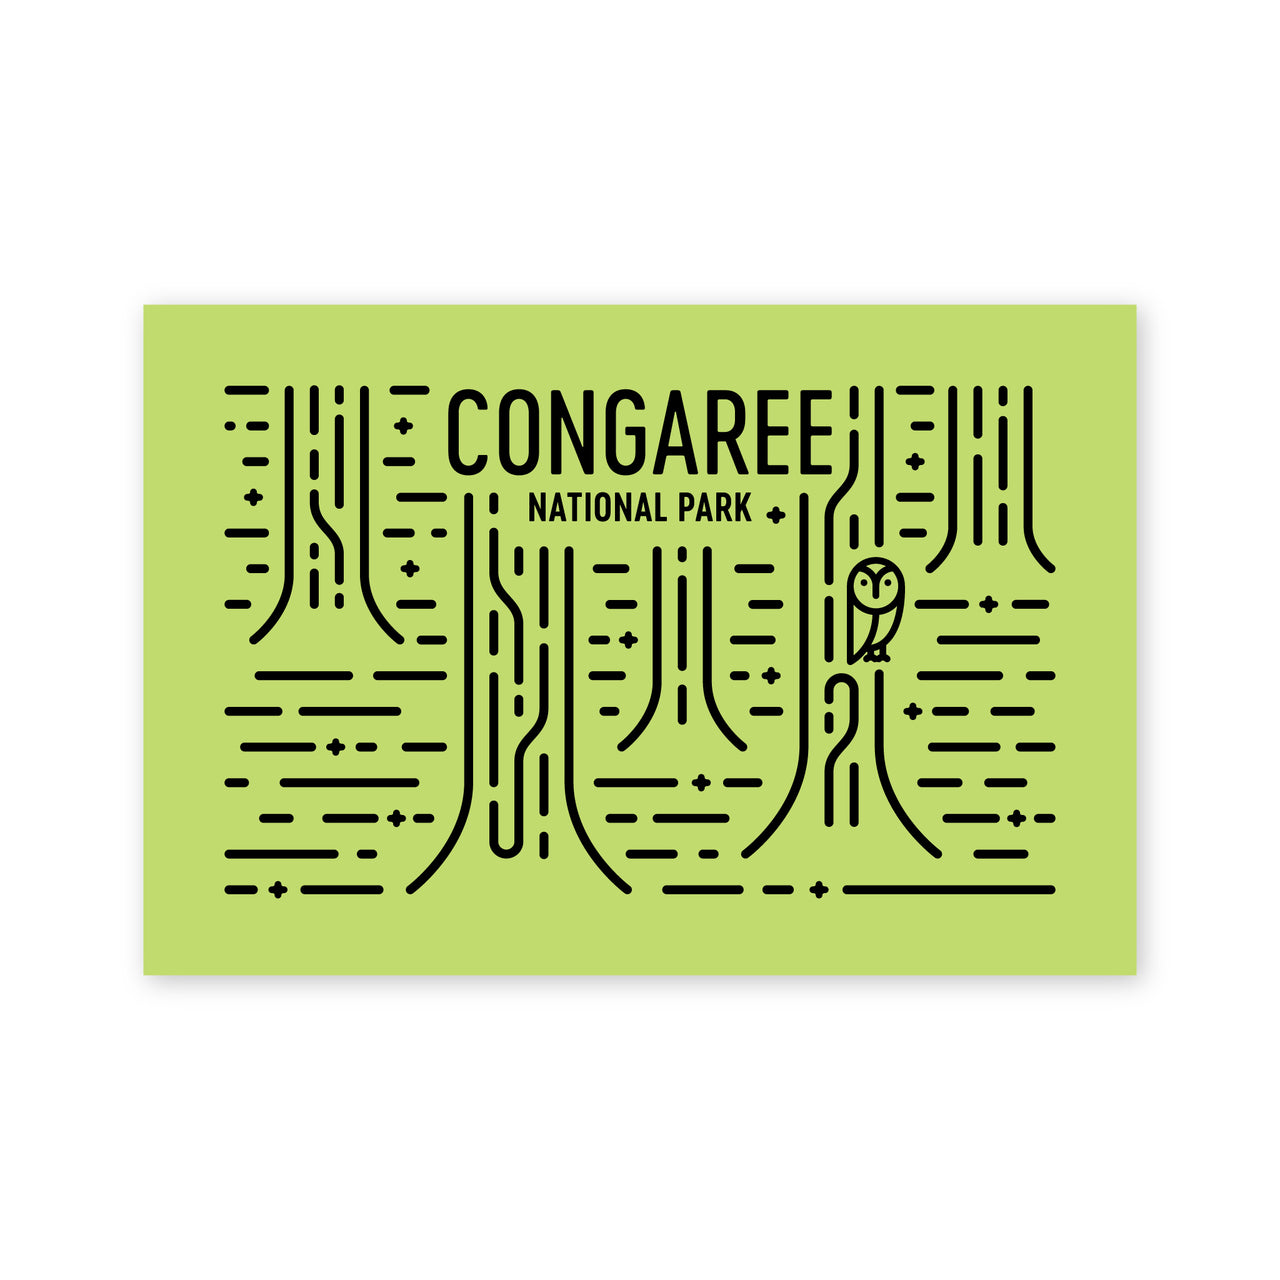 Congaree National Park Postcard